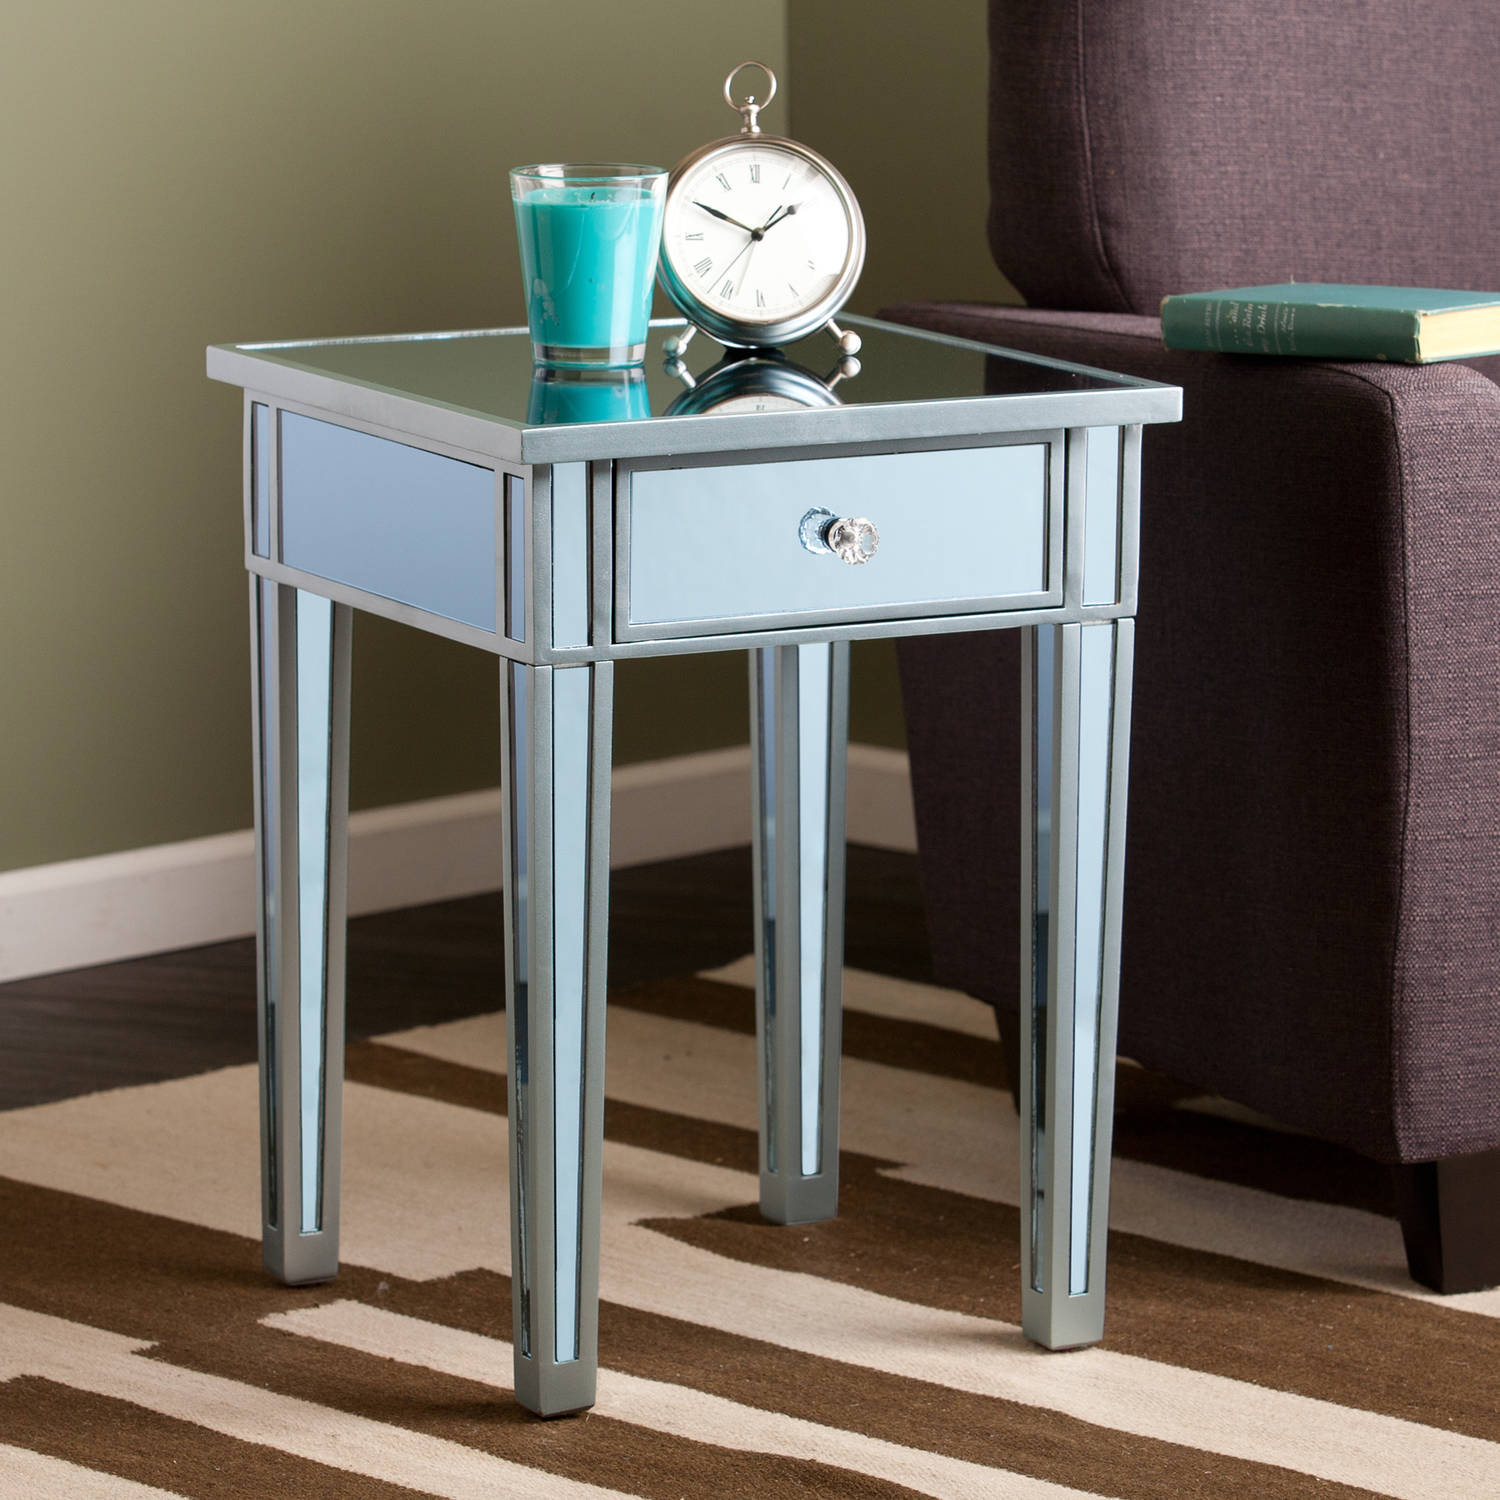 southern enterprises illusions colored mirror accent table blue teal console with shelves and drawers drum throne parts pedestal kitchen round rattan side bronze glass coffee